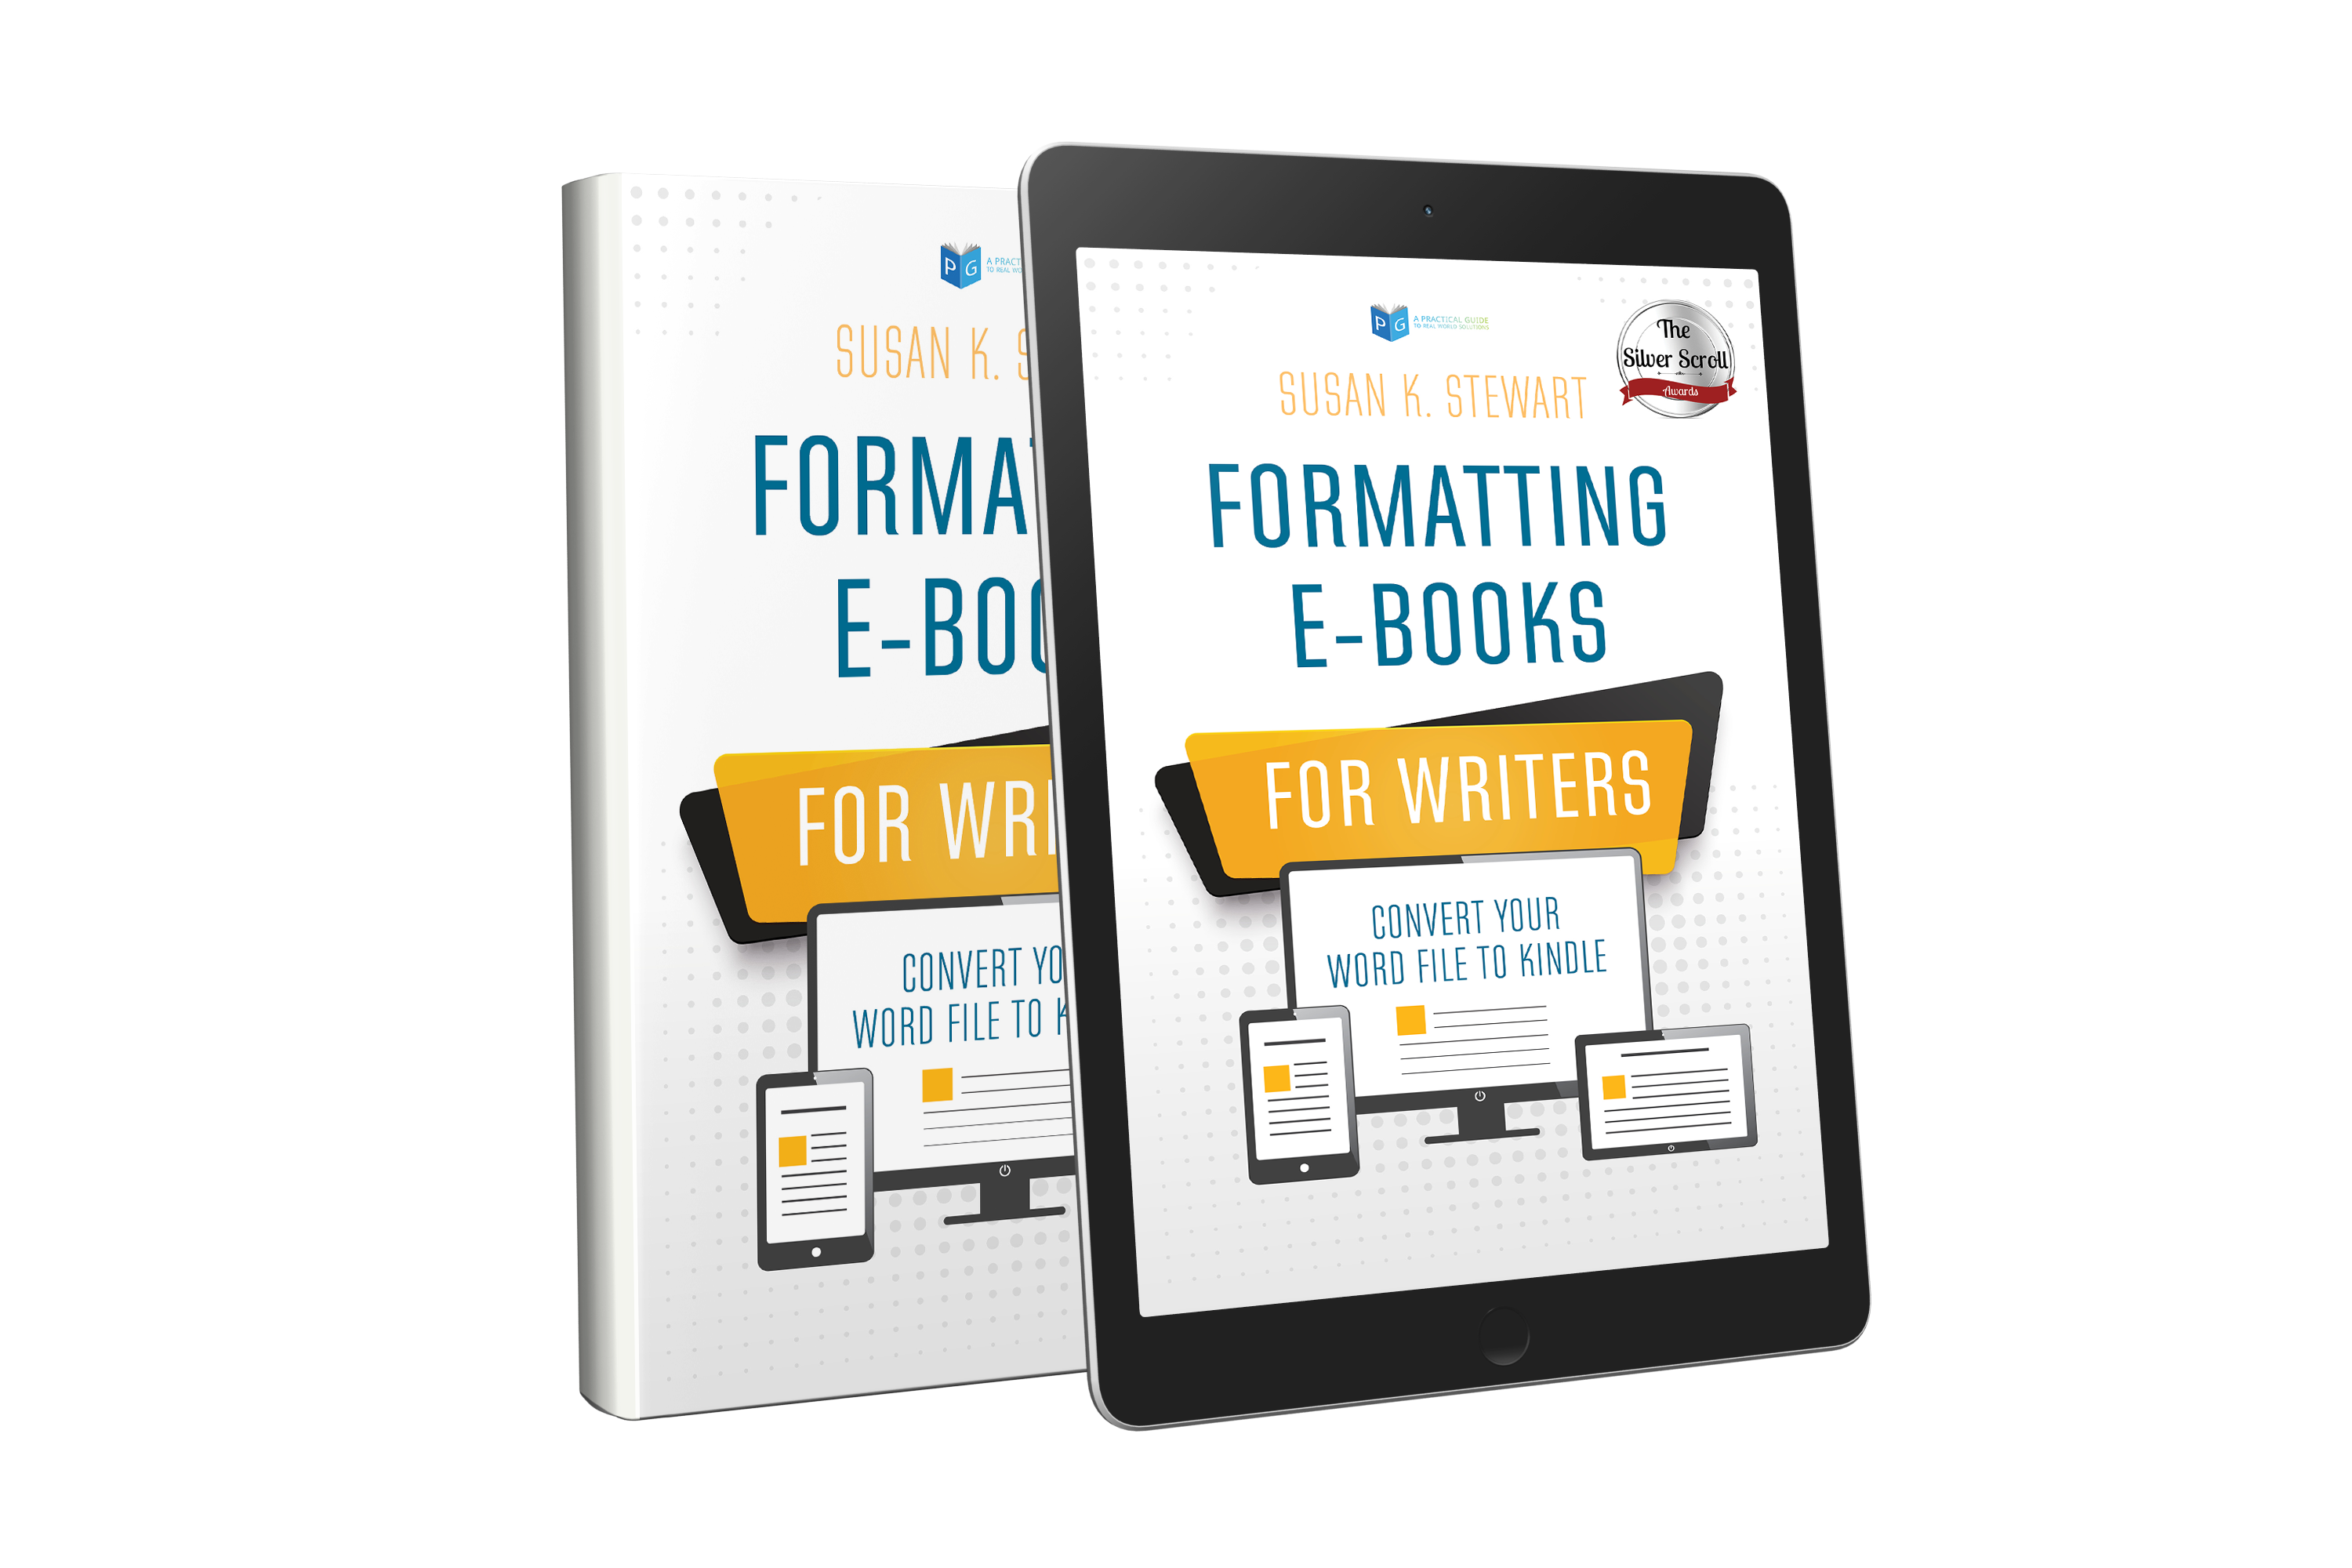 Formatting e-Books for Writers: Convert Your Word File to Kindle (PDF)